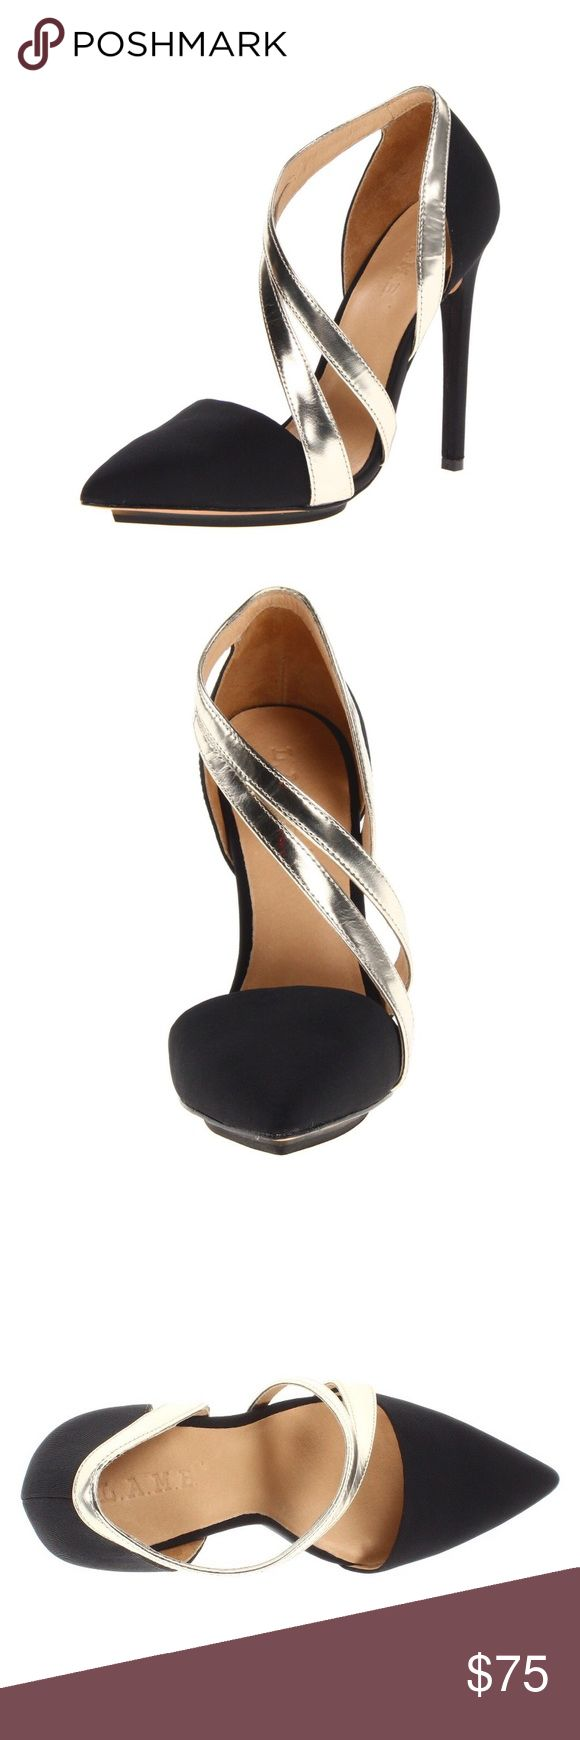 L.A.M.B. Lynn D'Orsay Pump black SOLD OUT EUC L.A.M.B. black and gold pumps size 8. Only worn once for less than 2 hours. Completely sold out in this style. Absolutely gorgeous in person. L.A.M.B. Shoes Heels